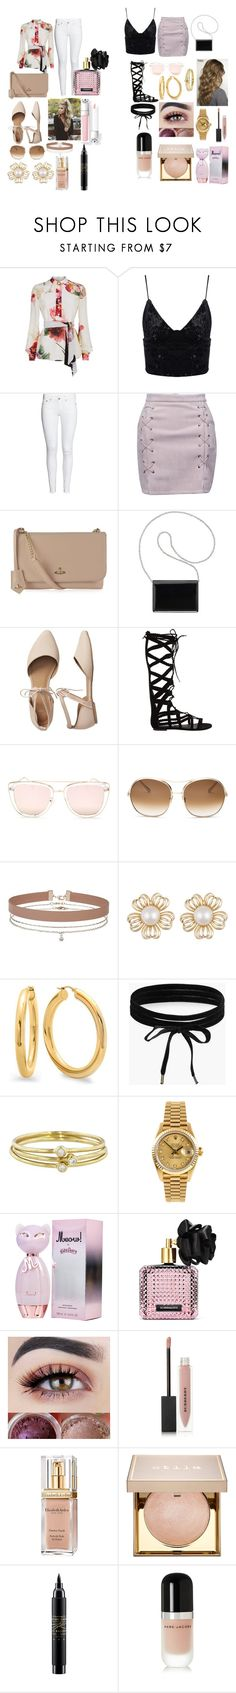 """""""night and day"""" by tyeshadshriver on Polyvore featuring Lanvin, WithChic, Vivienne Westwood, Nine West, Gap, Steve Madden, Quay, Chloé, Miss Selfridge and Boohoo"""